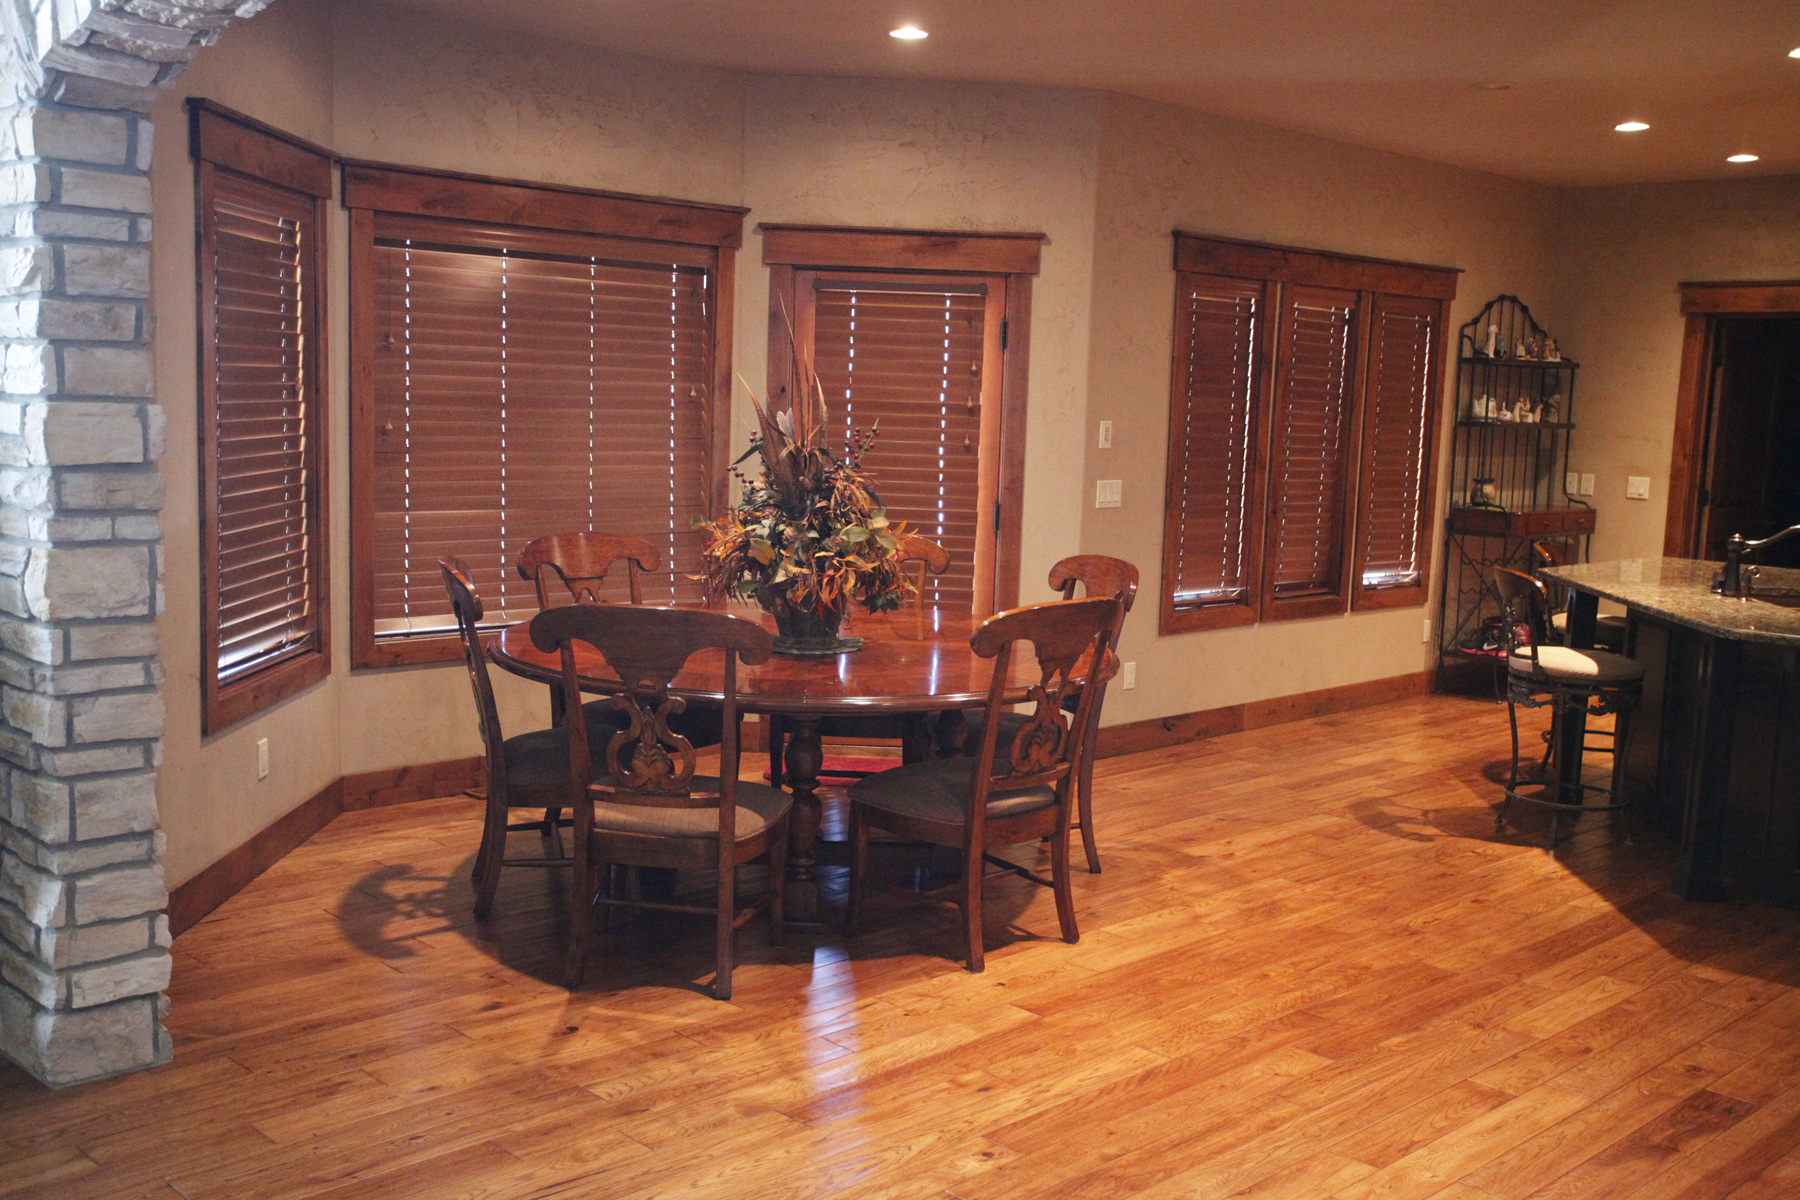 hardwood floor kitchens hardwood floors in kitchen Large kitchen hardwood floor